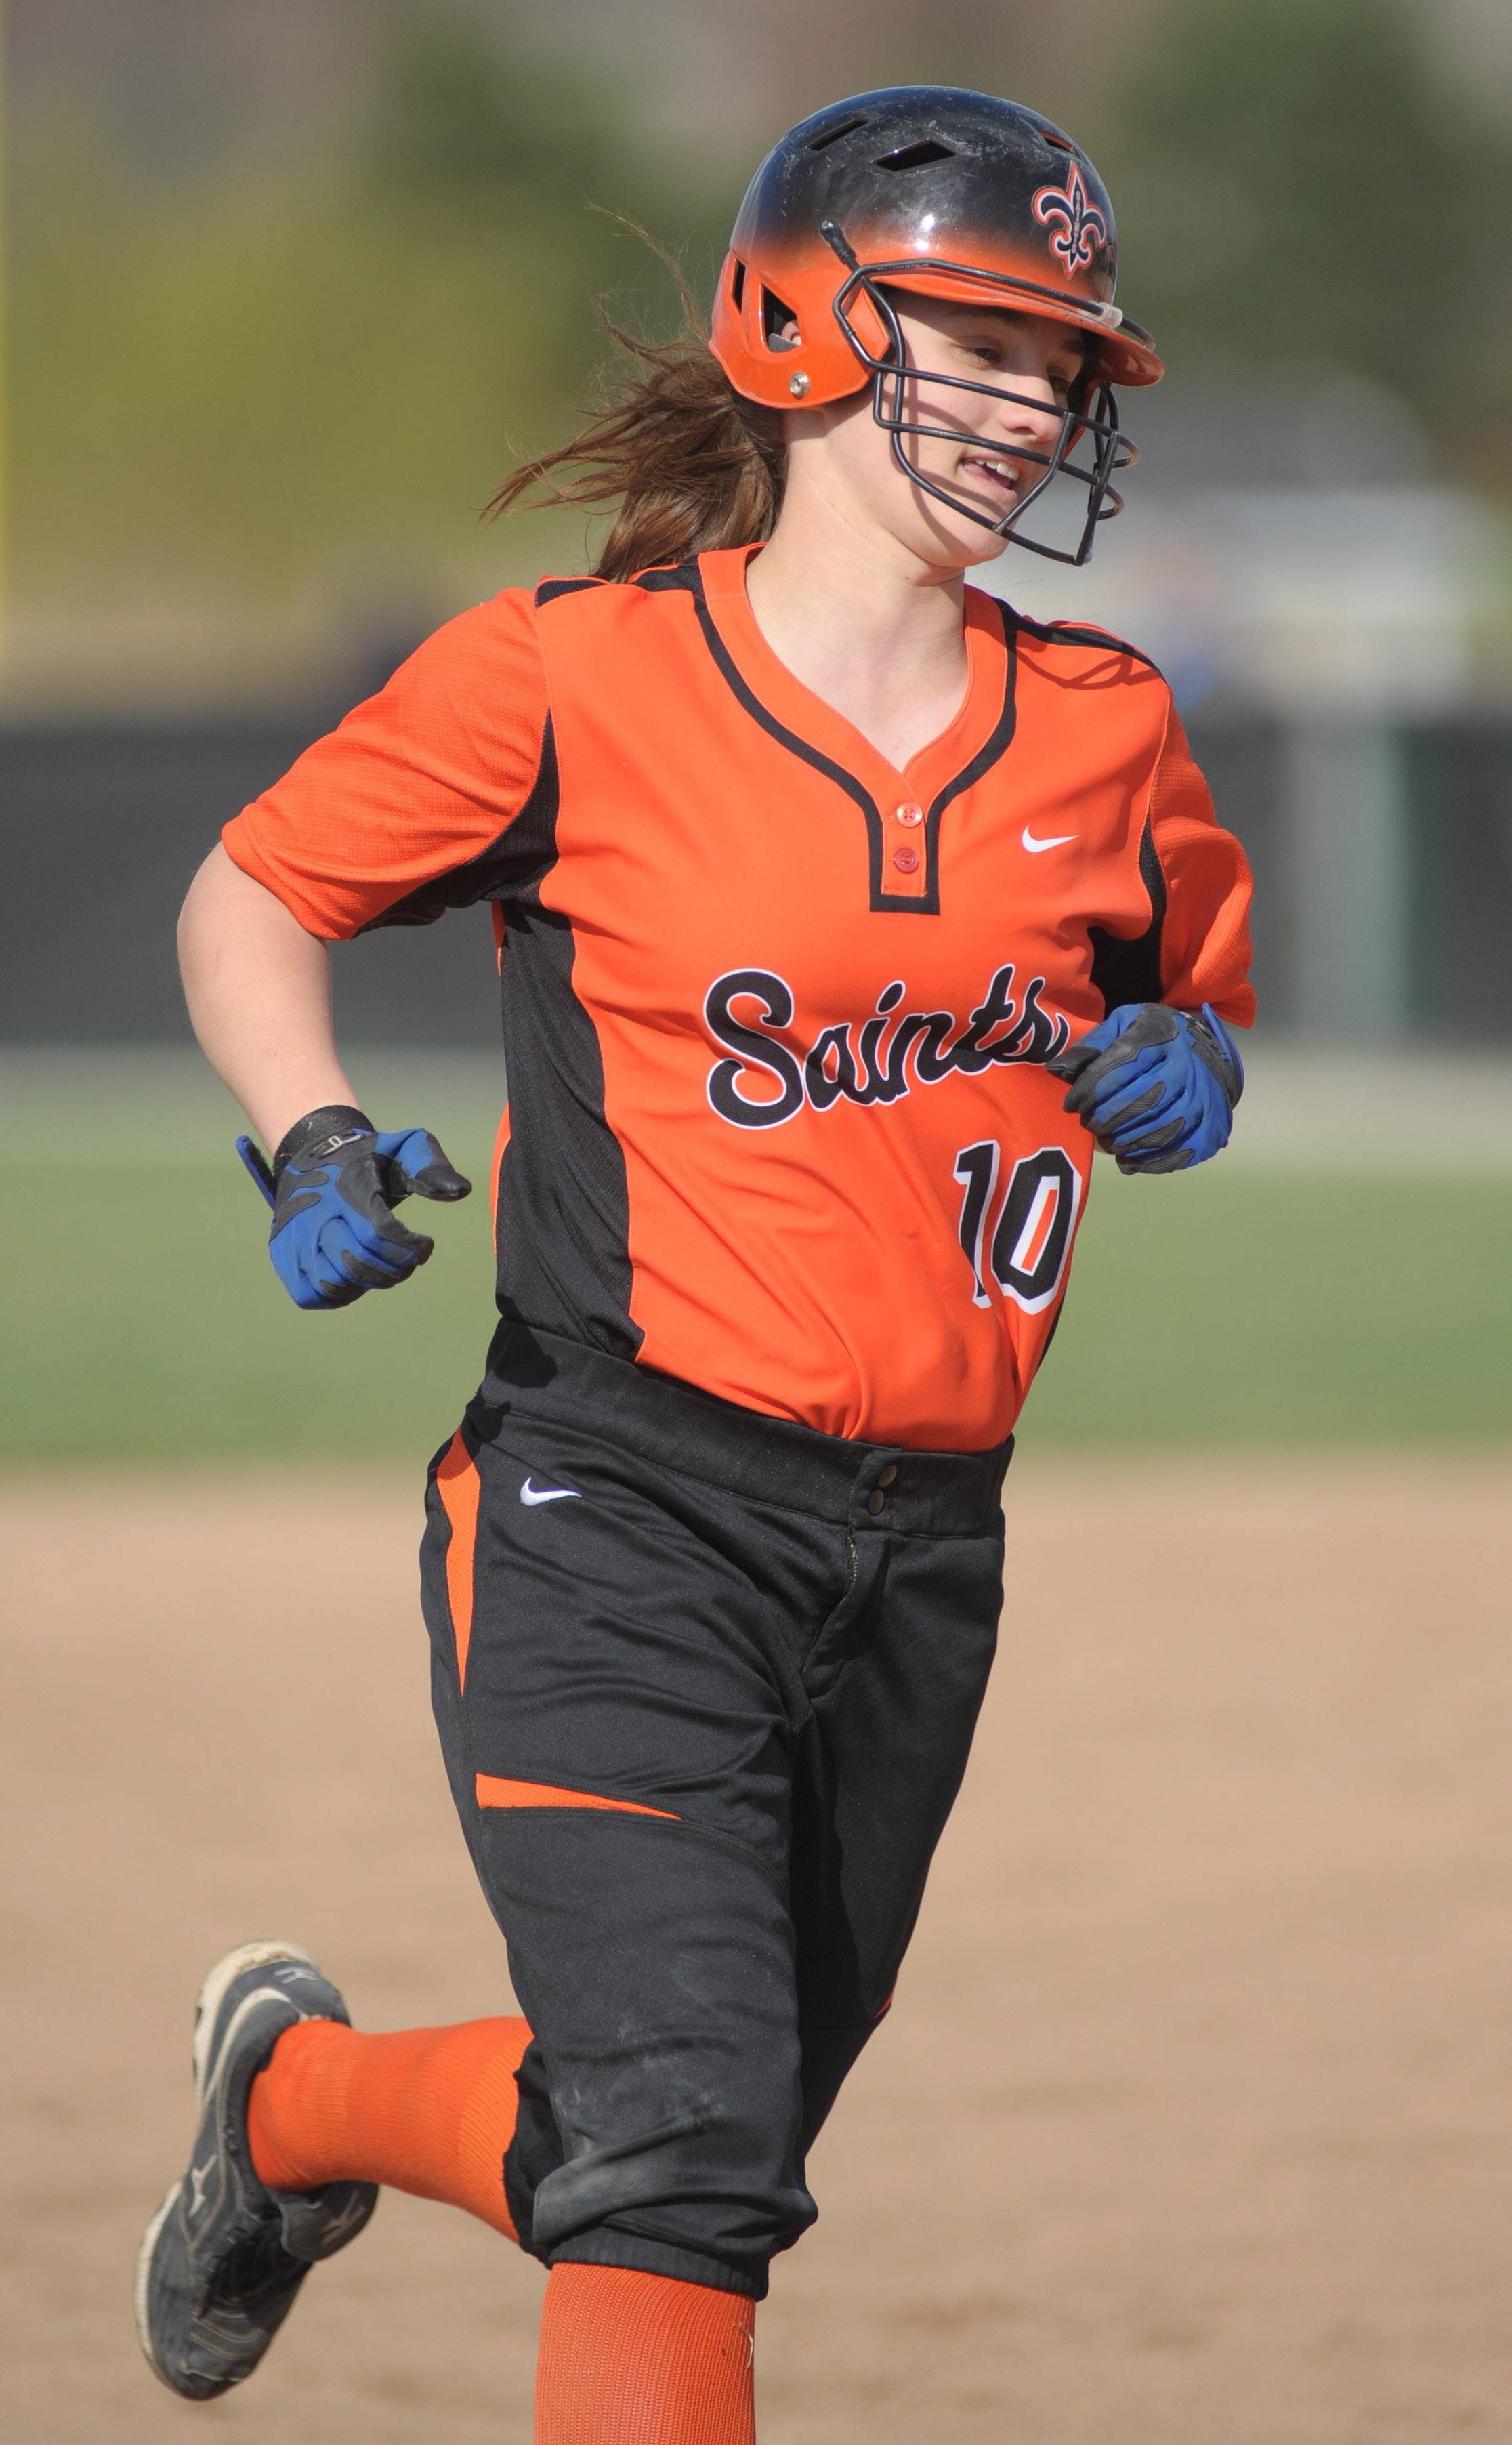 St. Charles East's Kate Peterburs rounds third base after her home run hit in the first inning vs. Lyons on Friday, April 25.